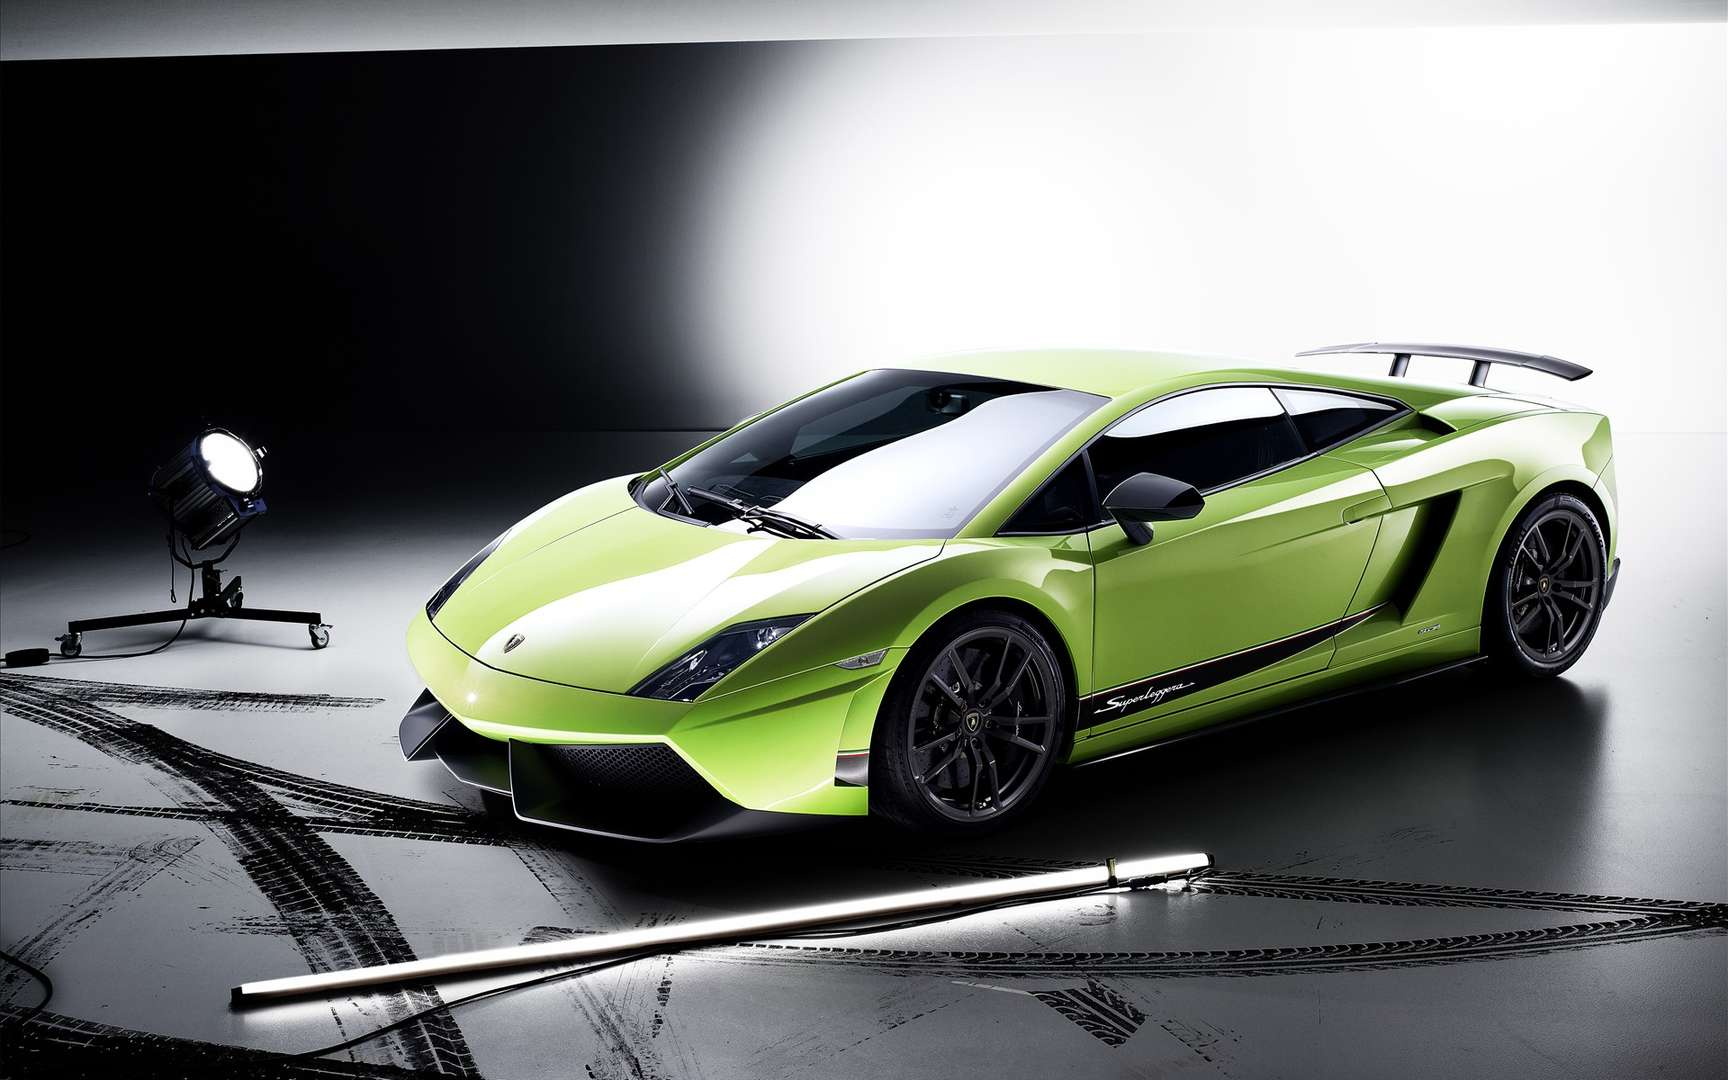 Lamborghini Gallardo LP570-4 Superleggera #8308578